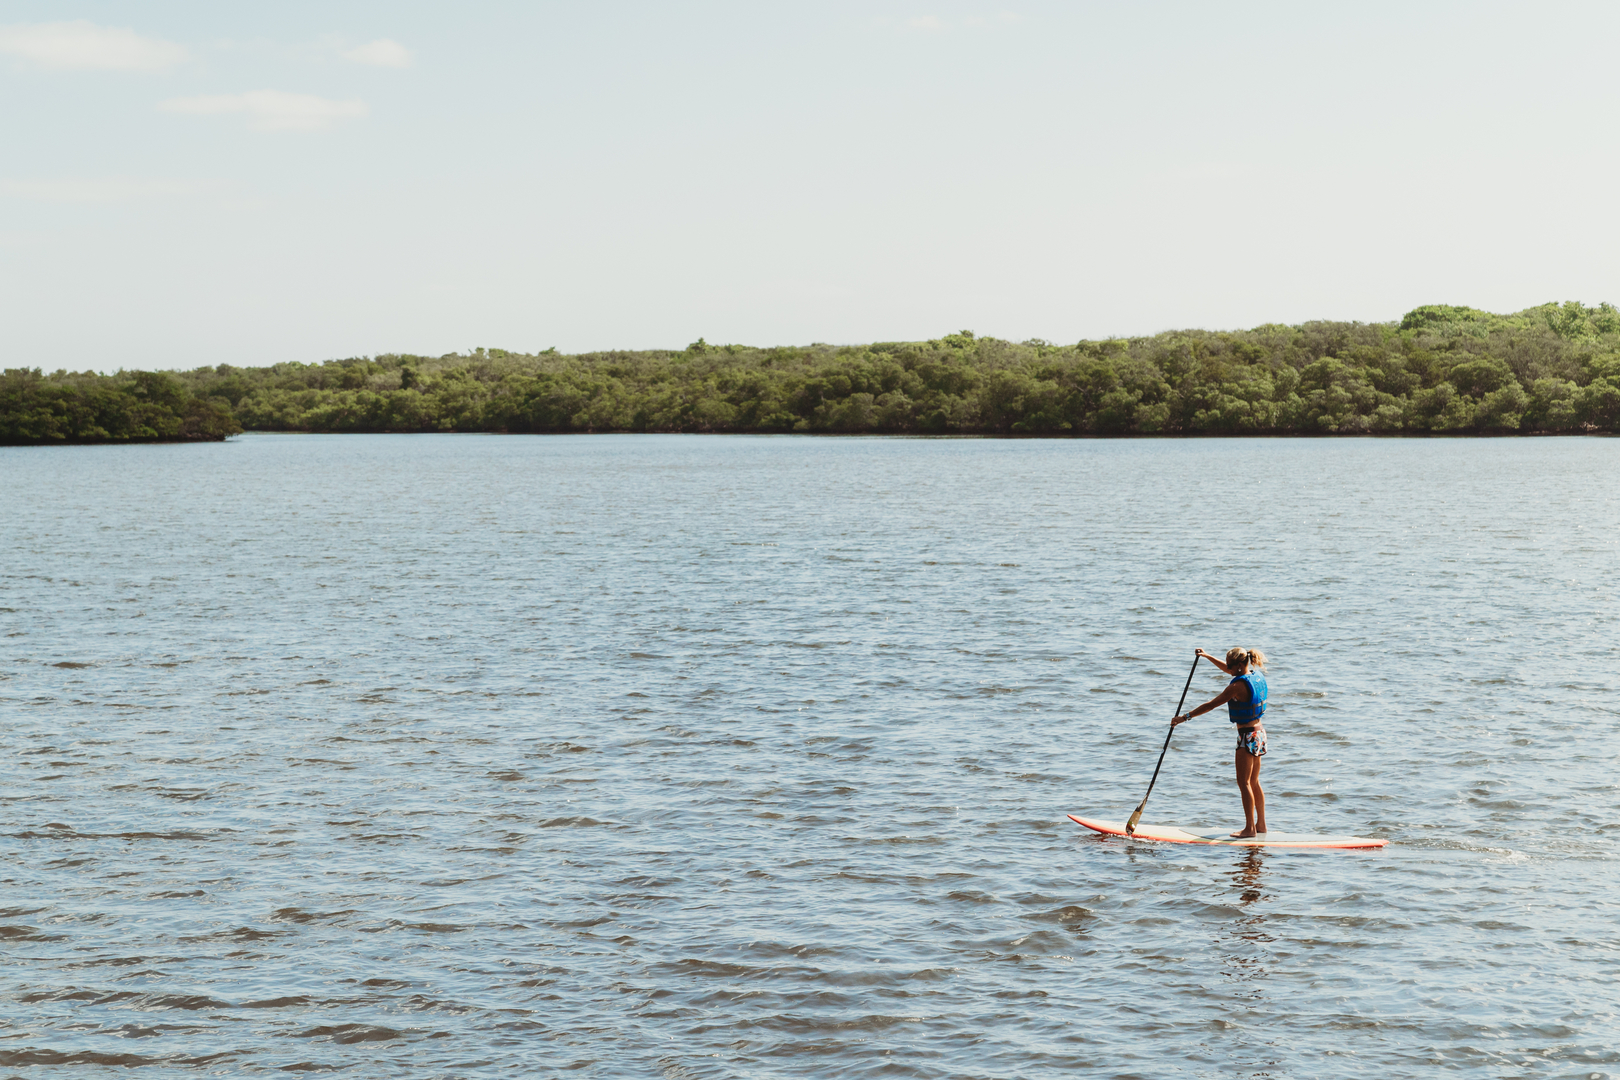 Paddleboarding on the water